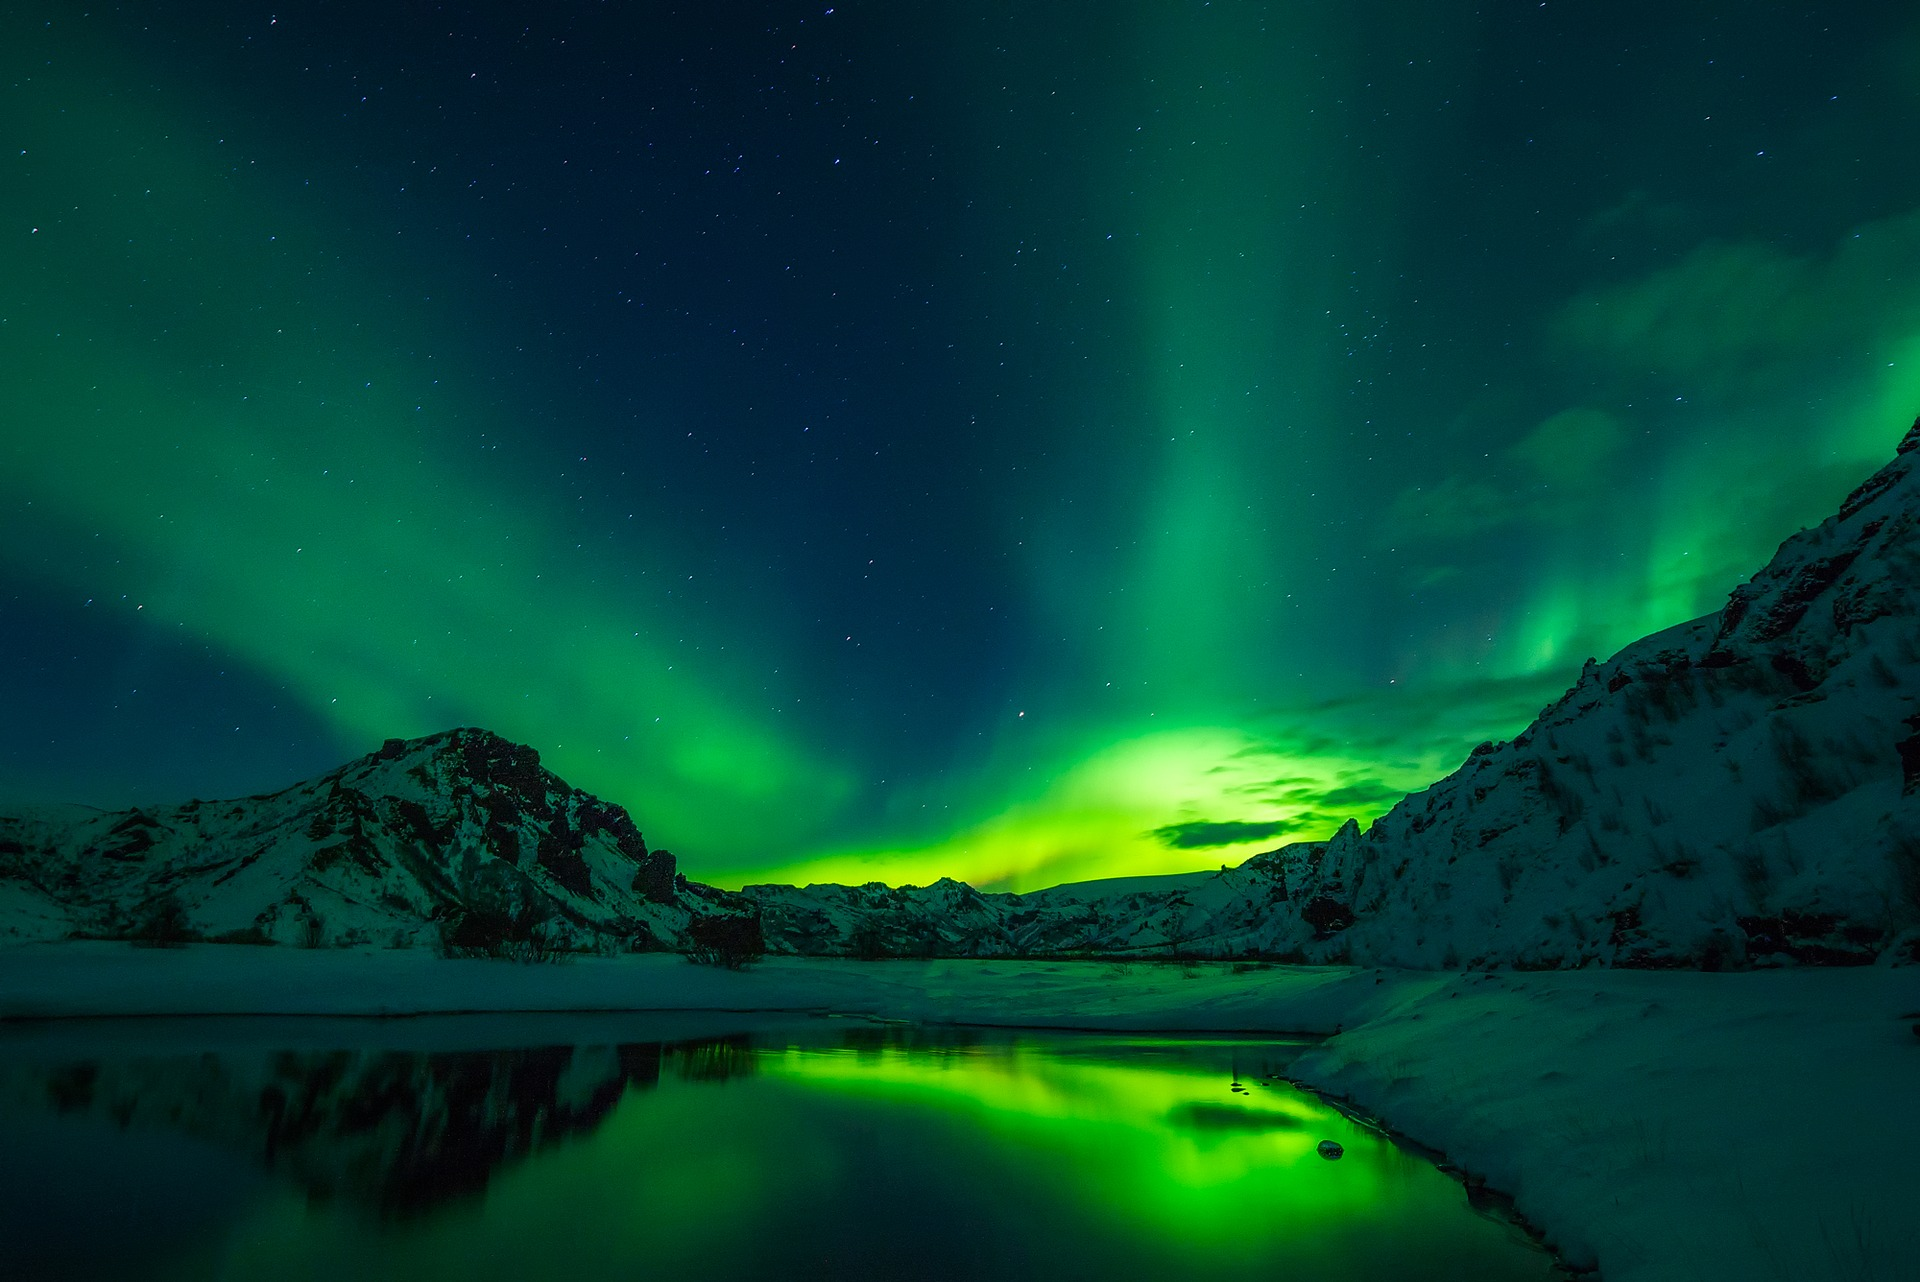 Northern lights above a lake and mountains in Iceland